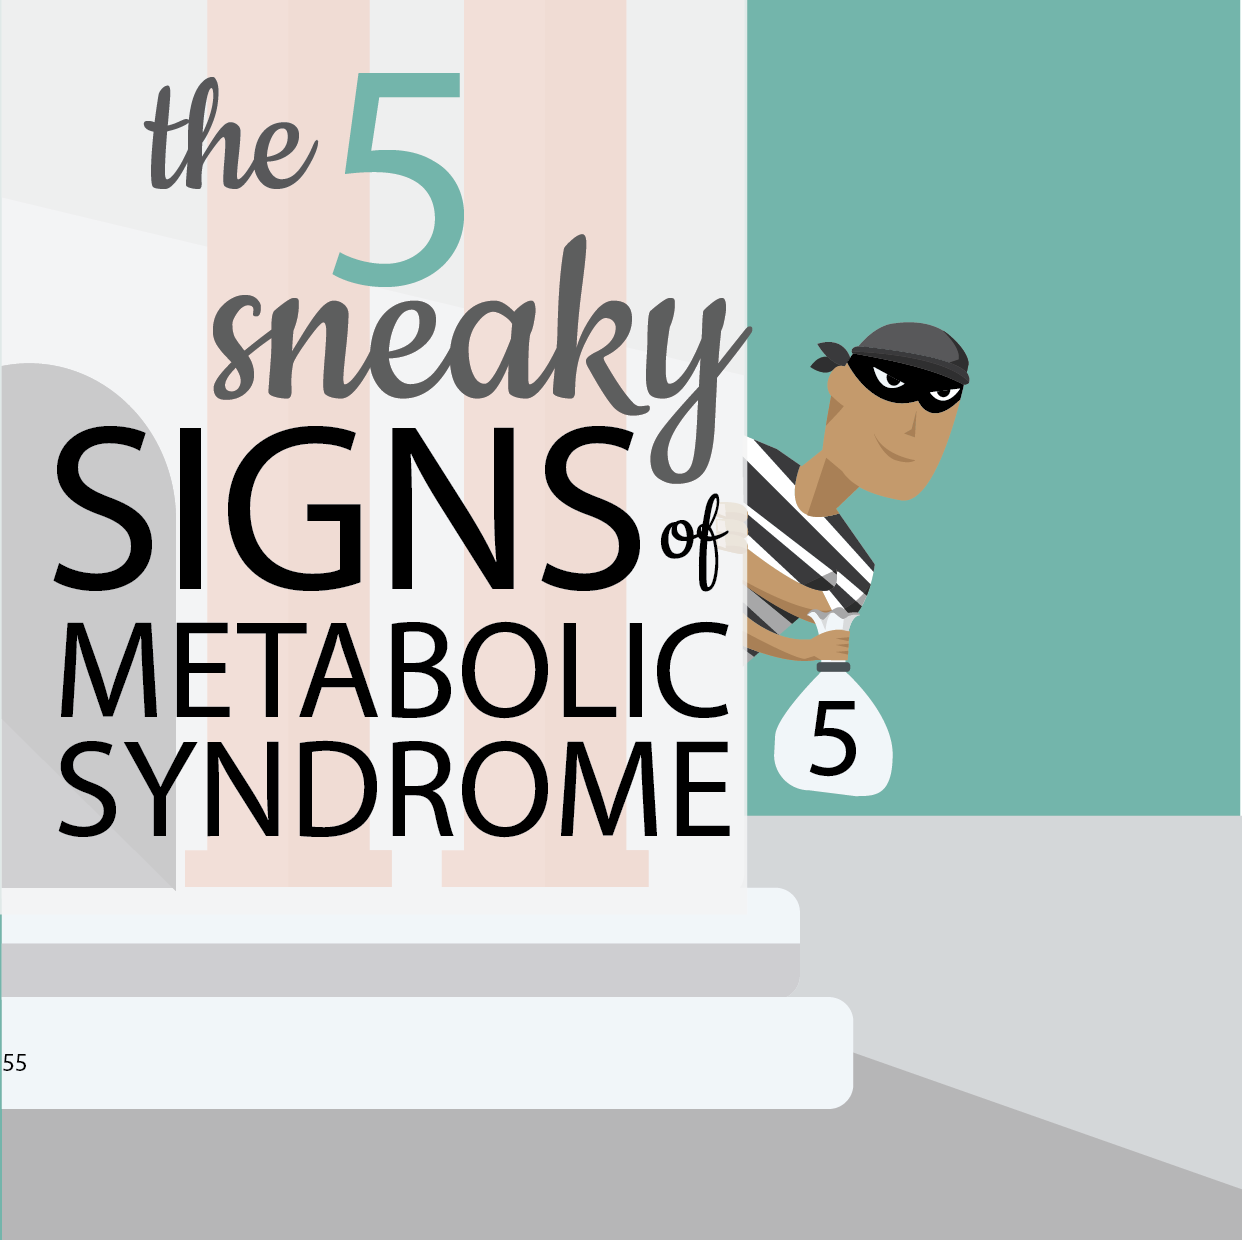 The 5 Sneaky Signs of Metabolic Syndrome